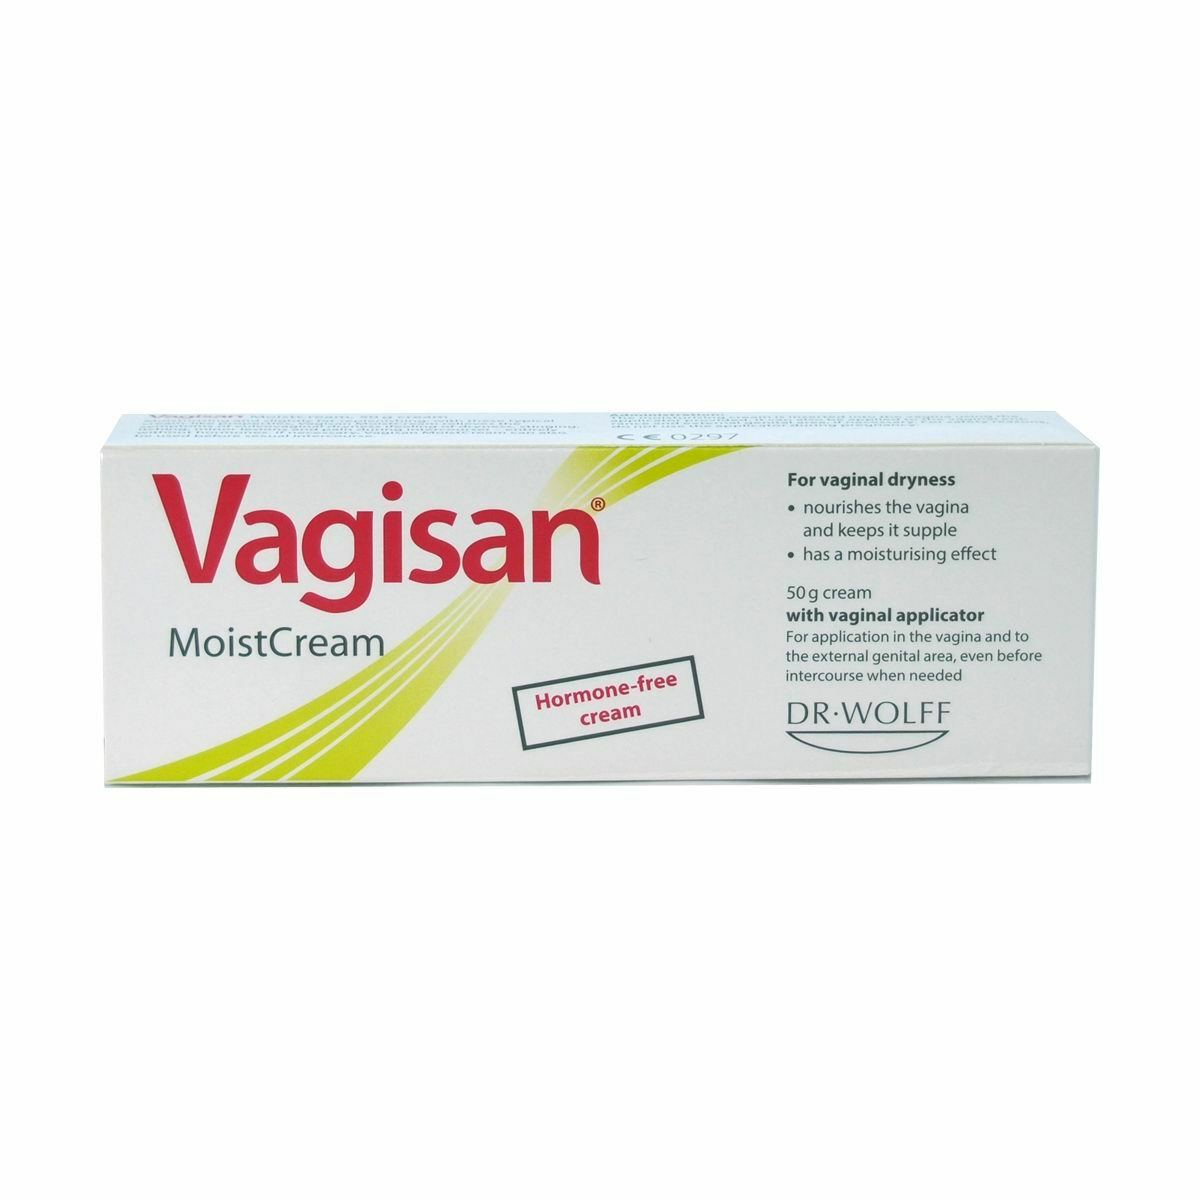 Where to apply external vaginal cream